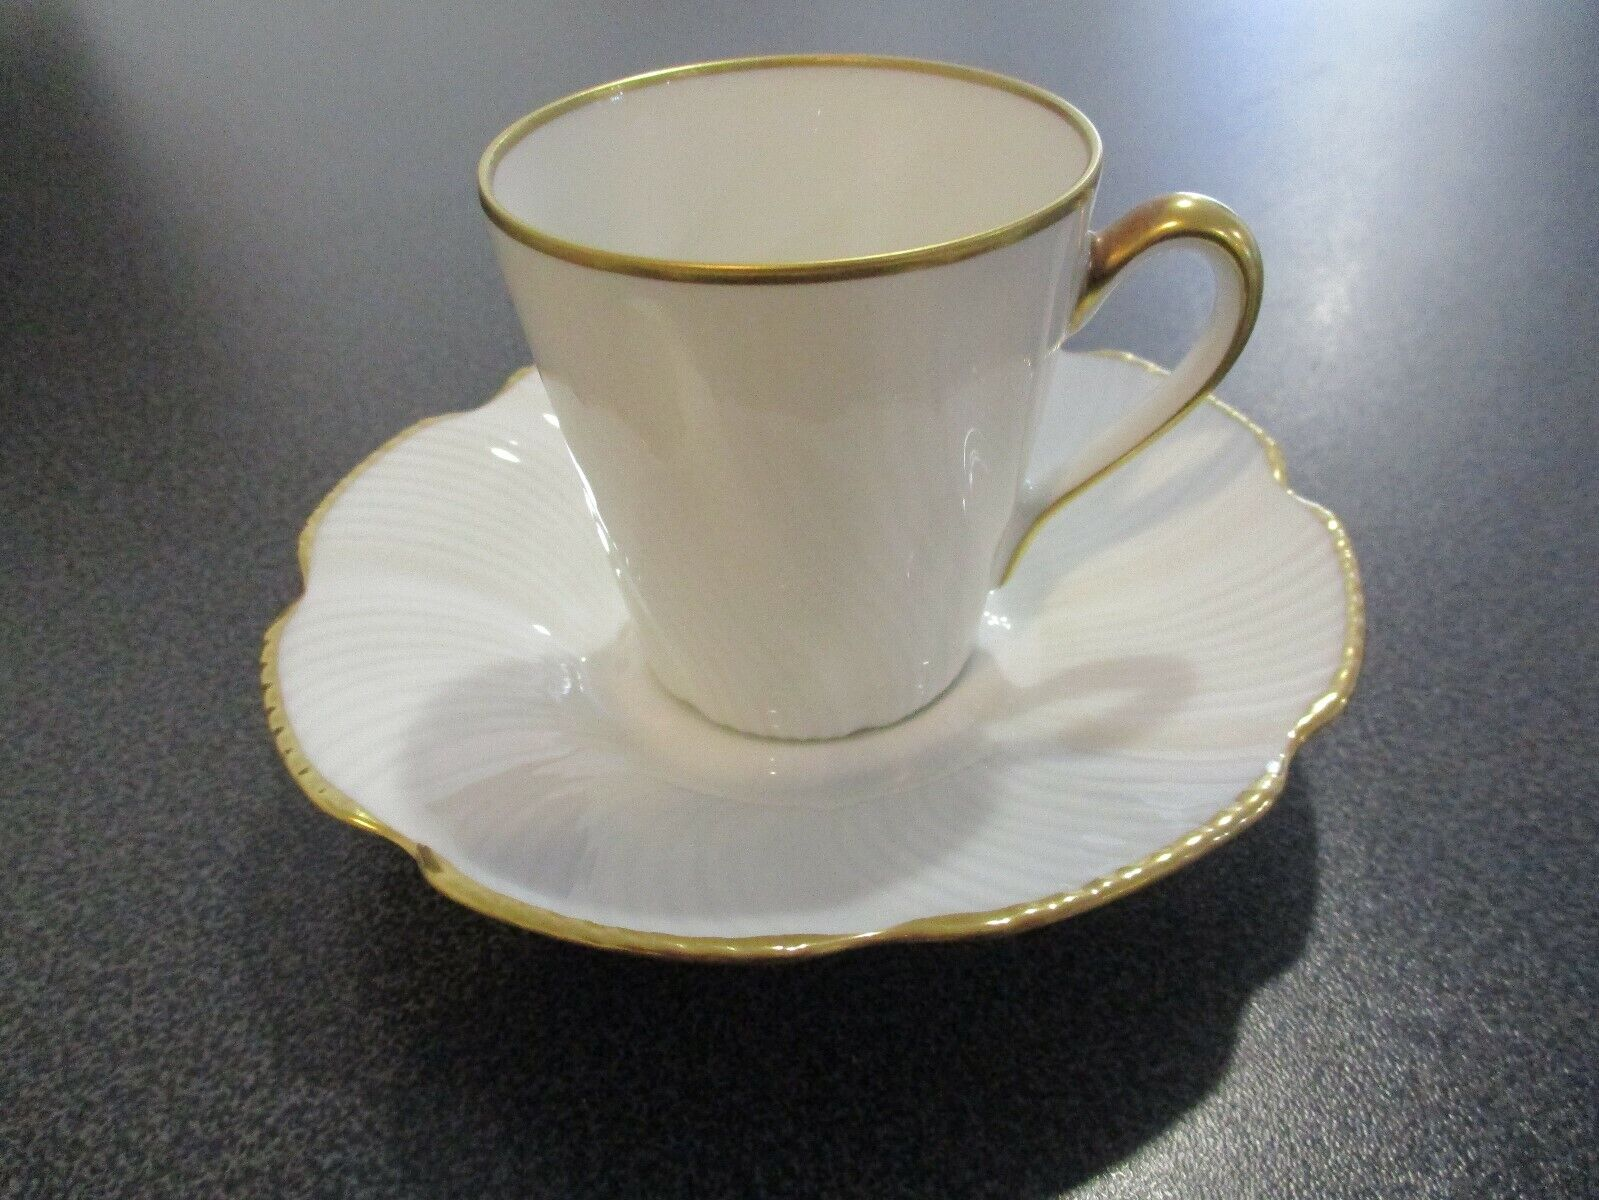 Chamart Limoges White Swirl Teacup And Saucer With Gold Trim